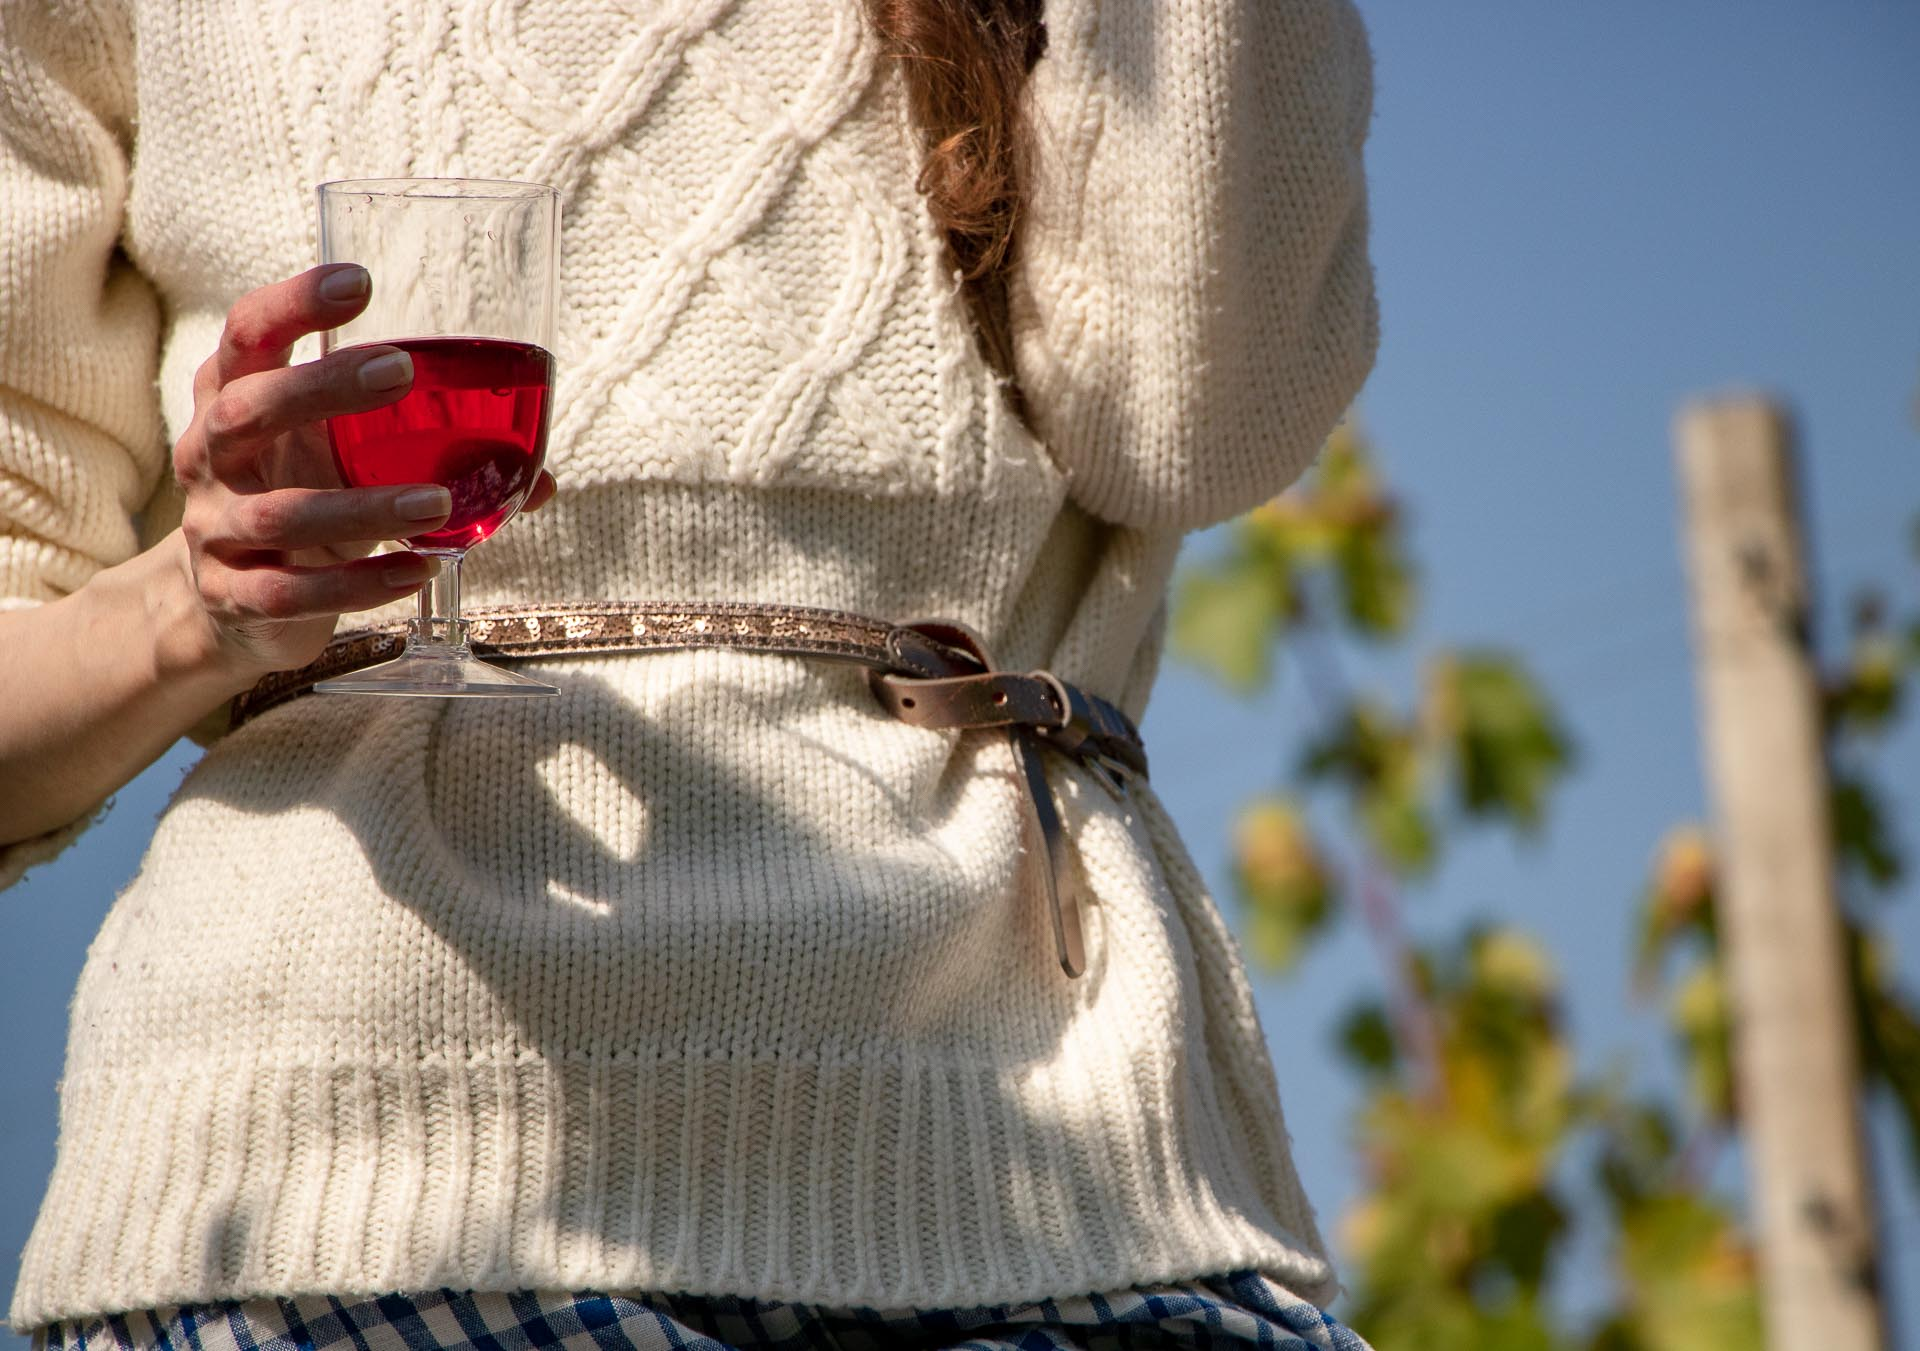 Beautiful Slovenian Fashion Blogger Veronika Lipar of Brunette from Wall Street dressed in blue and white check button down Mango dress, oversized white turtleneck sweater, dangling belt holding a red wine glass